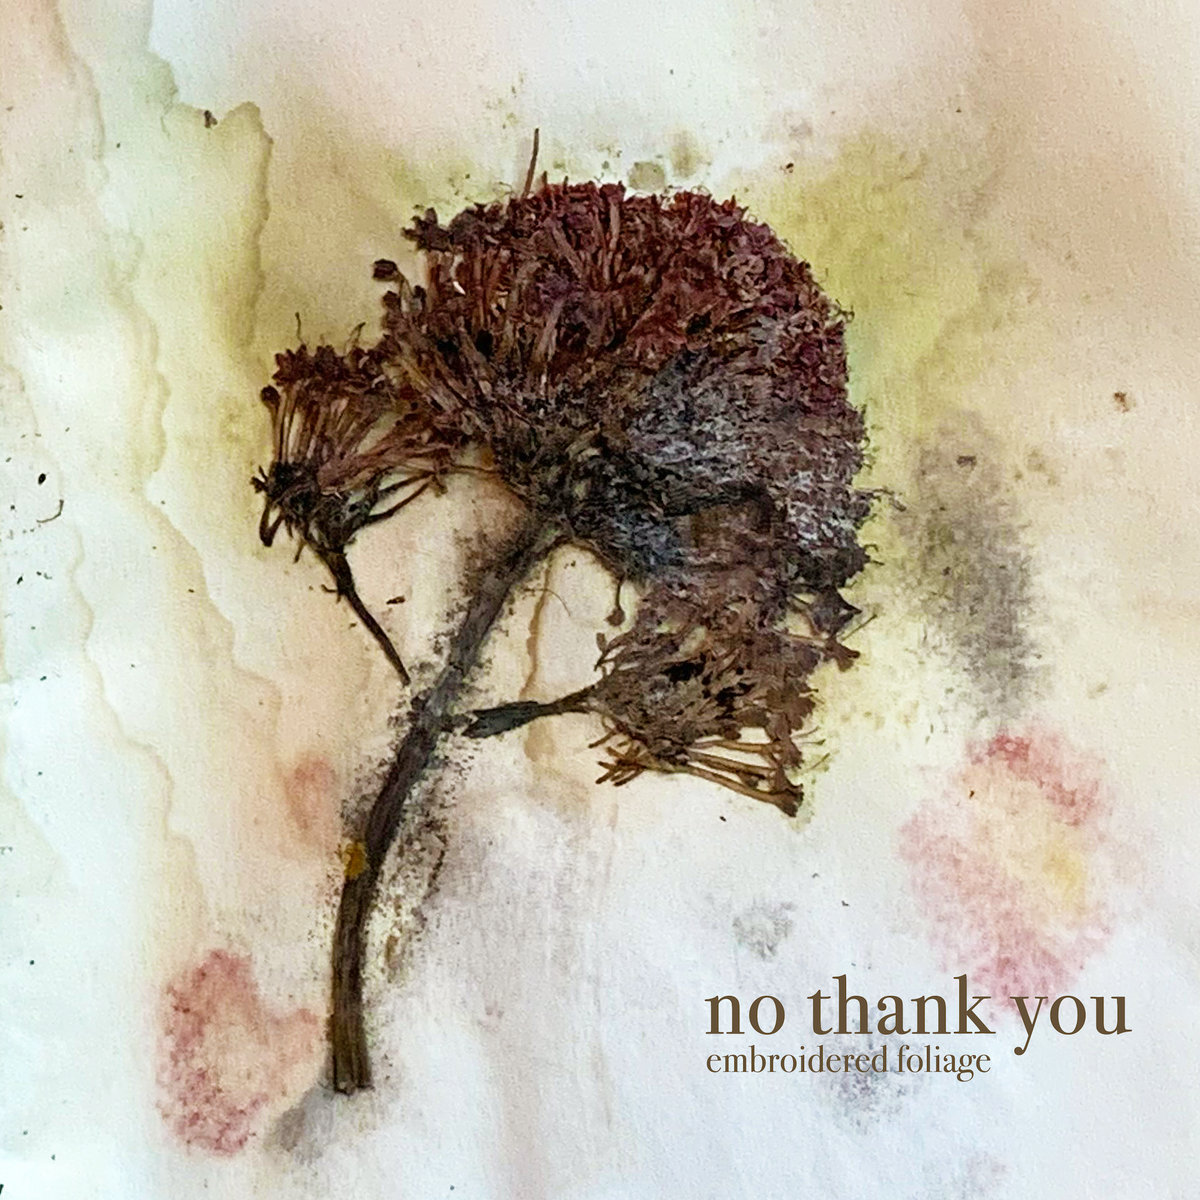 Embroidered Foliage - no thank you